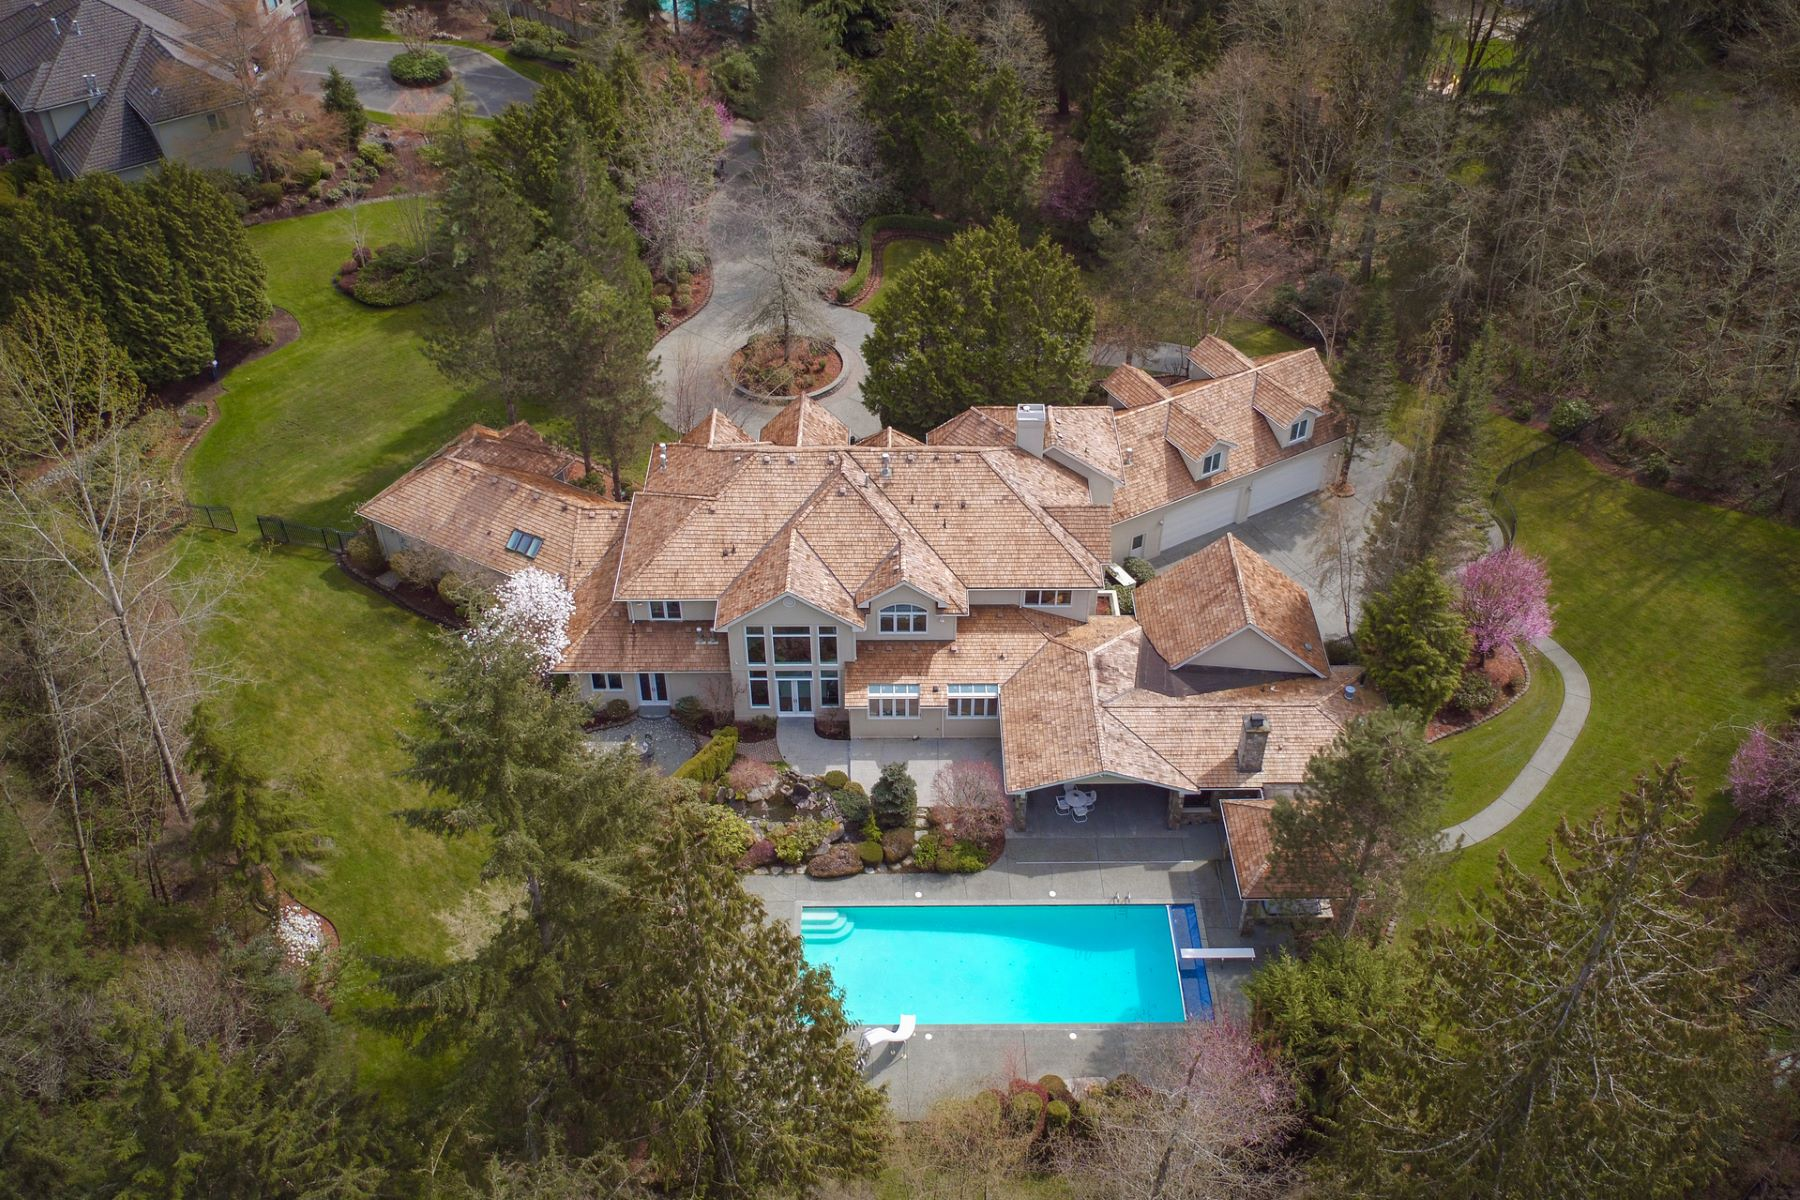 Single Family Home for Sale at Gated Estate in Lake of the Woods 21902 NE 140th Way Woodinville, Washington, 98072 United States